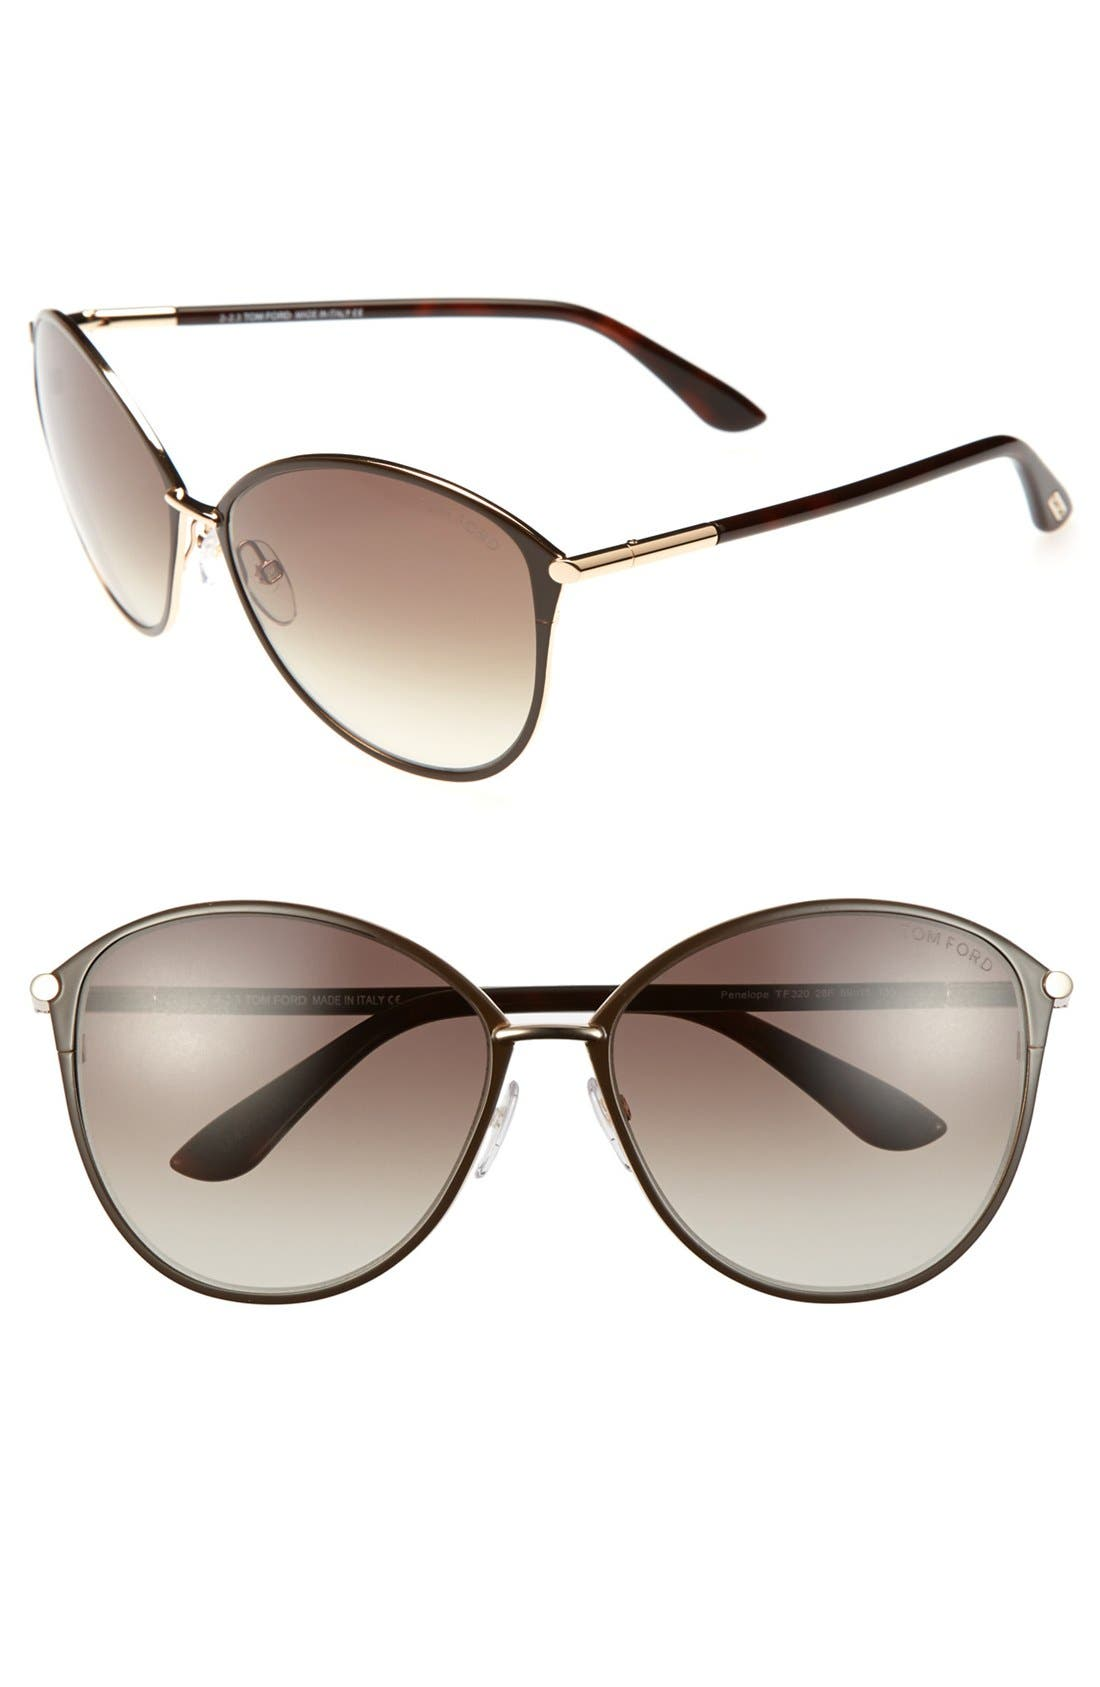 Main Image - Tom Ford Penelope 59mm Gradient Cat Eye Sunglasses